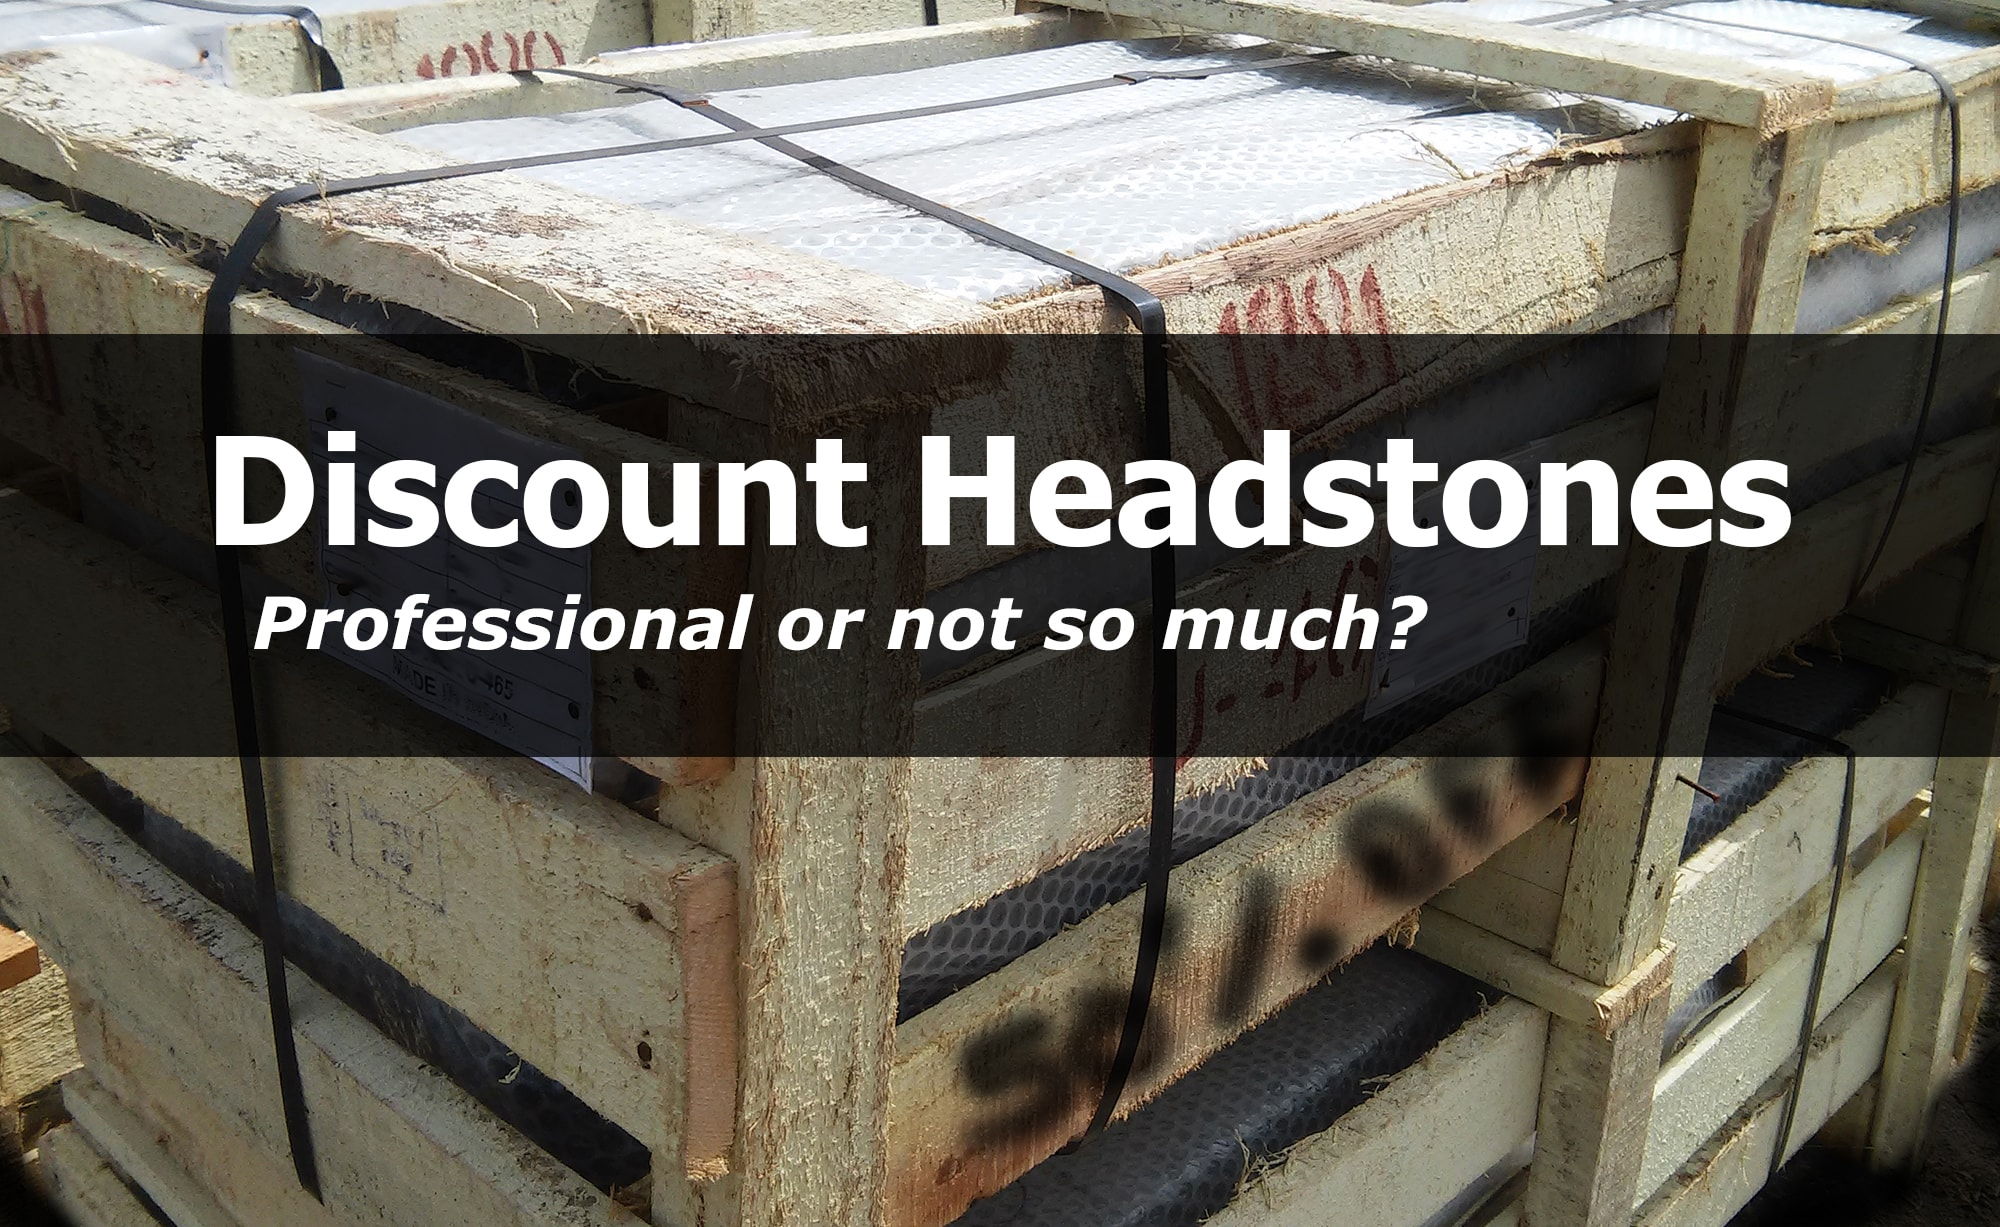 discount headstones, patten's michigan monuments, hastings michigan